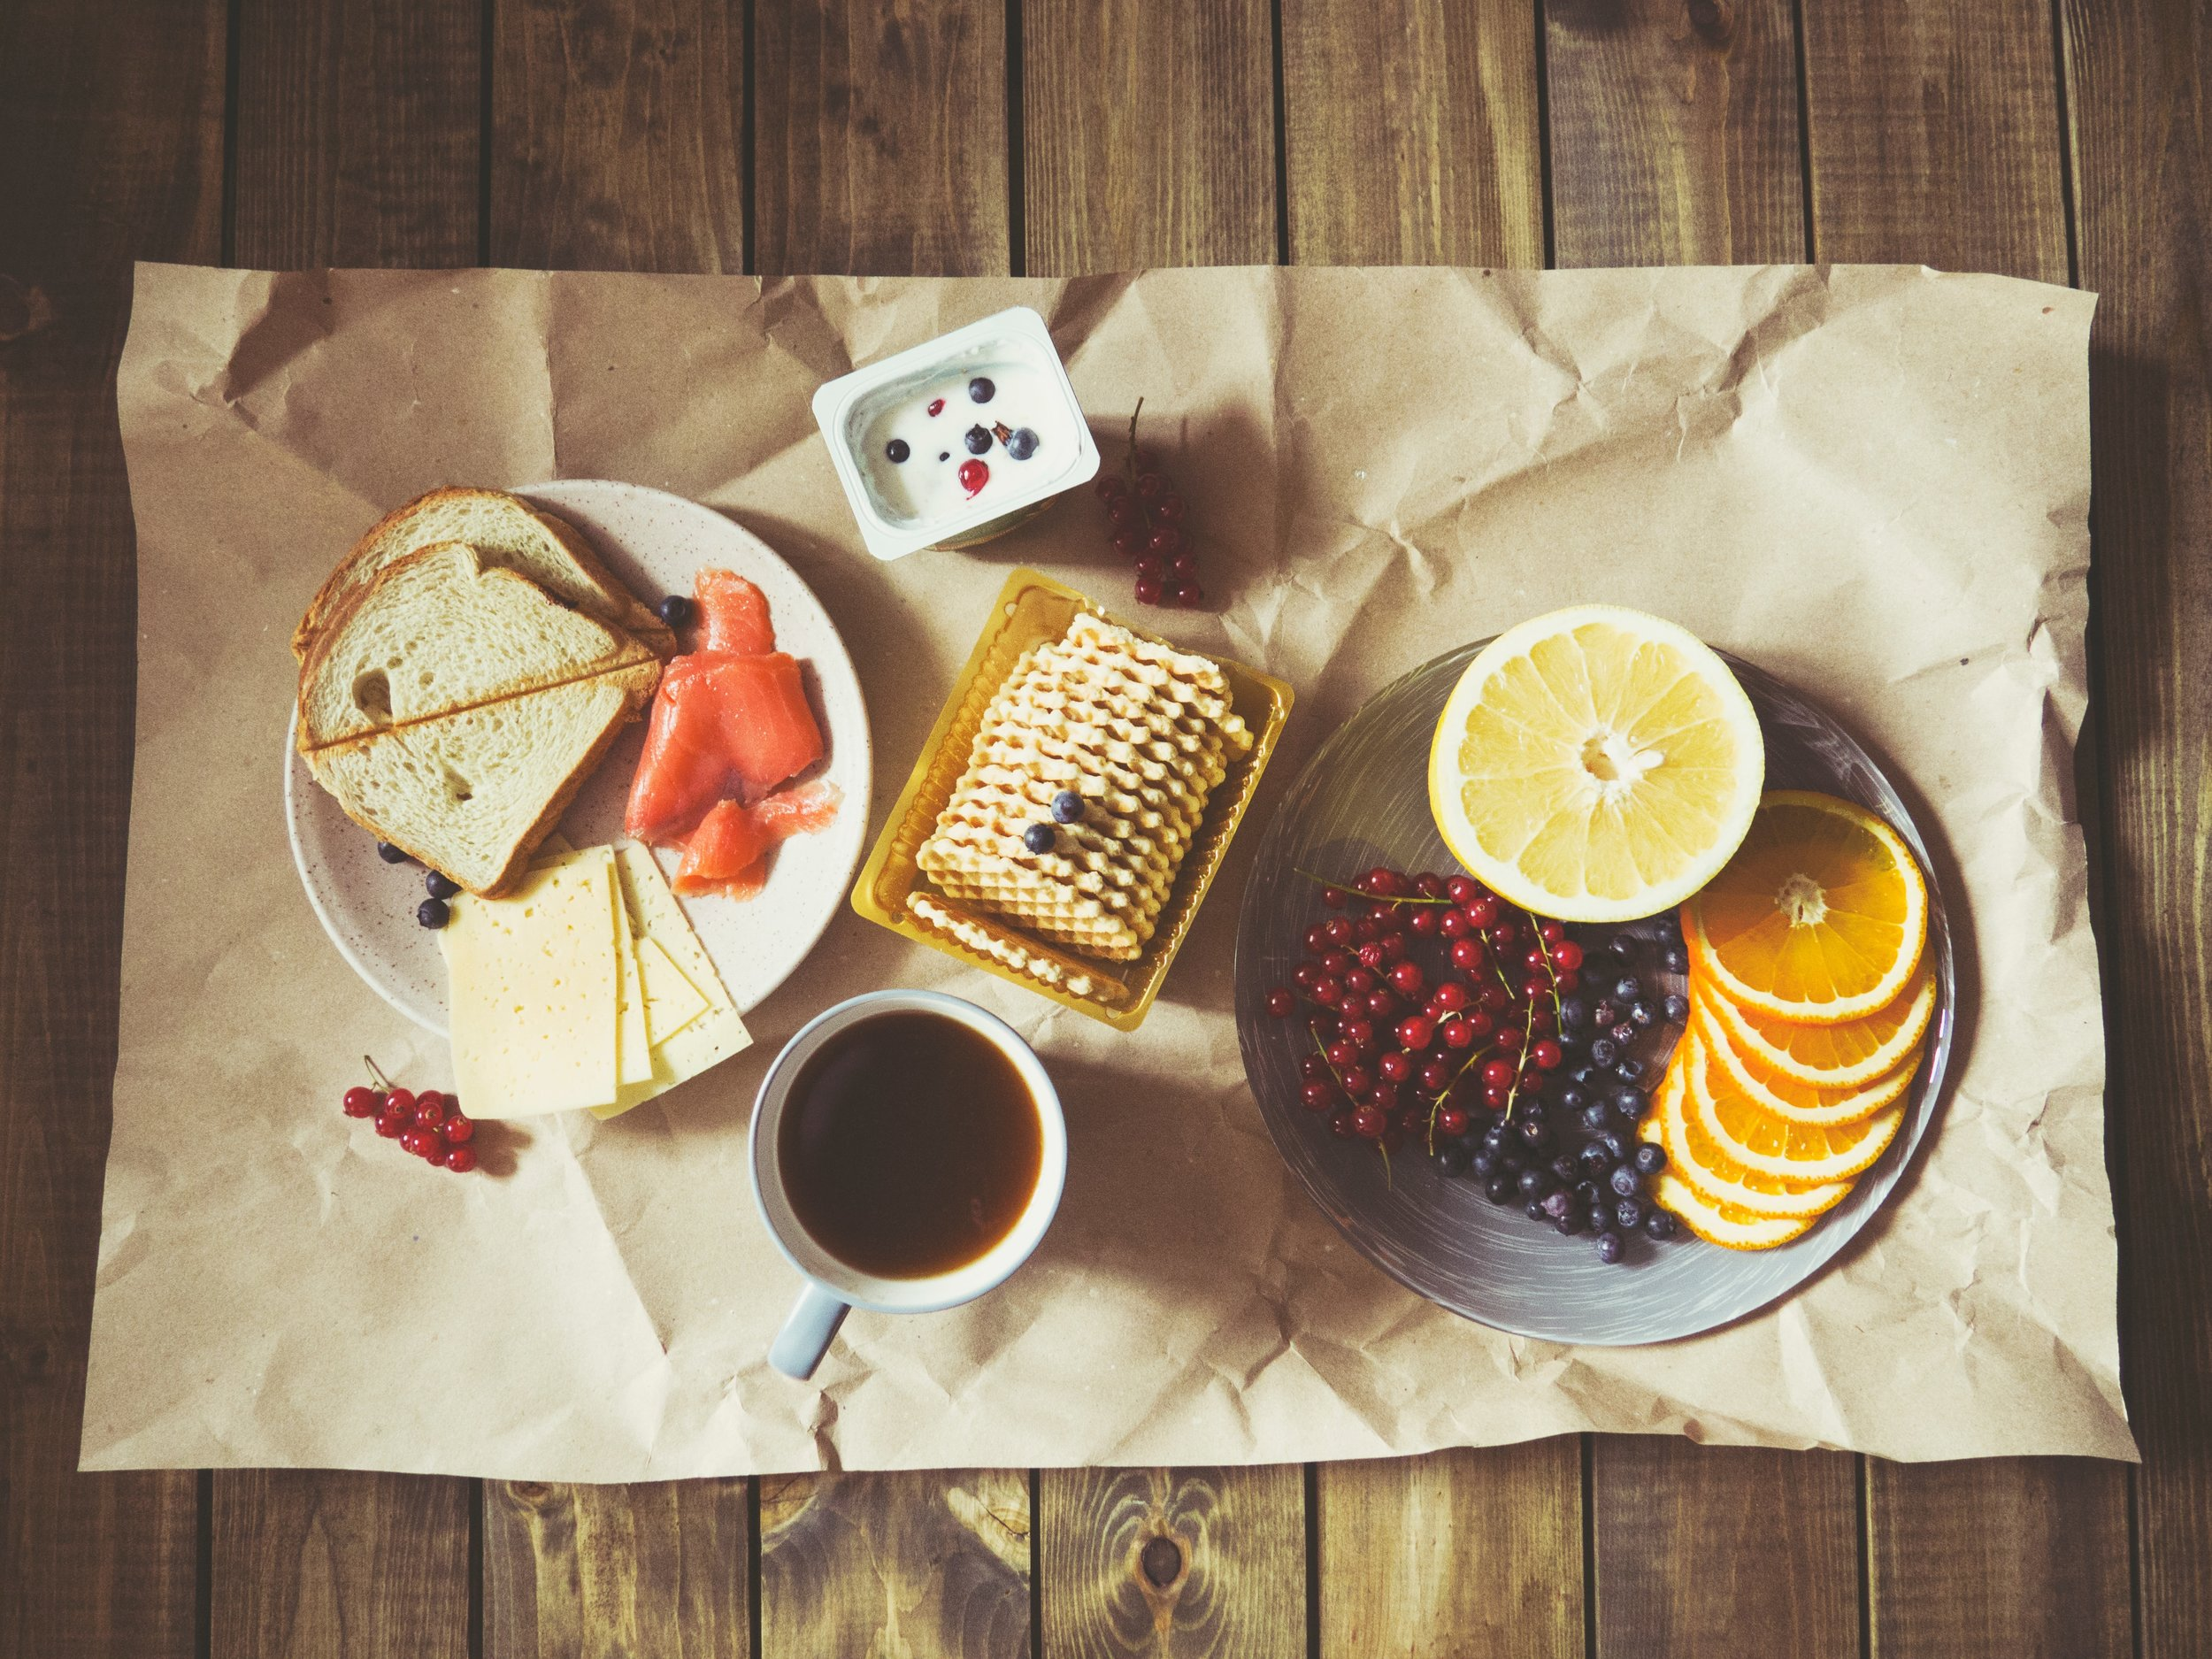 Cheese, crackers, fresh fruit, and a mug of tea spread out on a table.